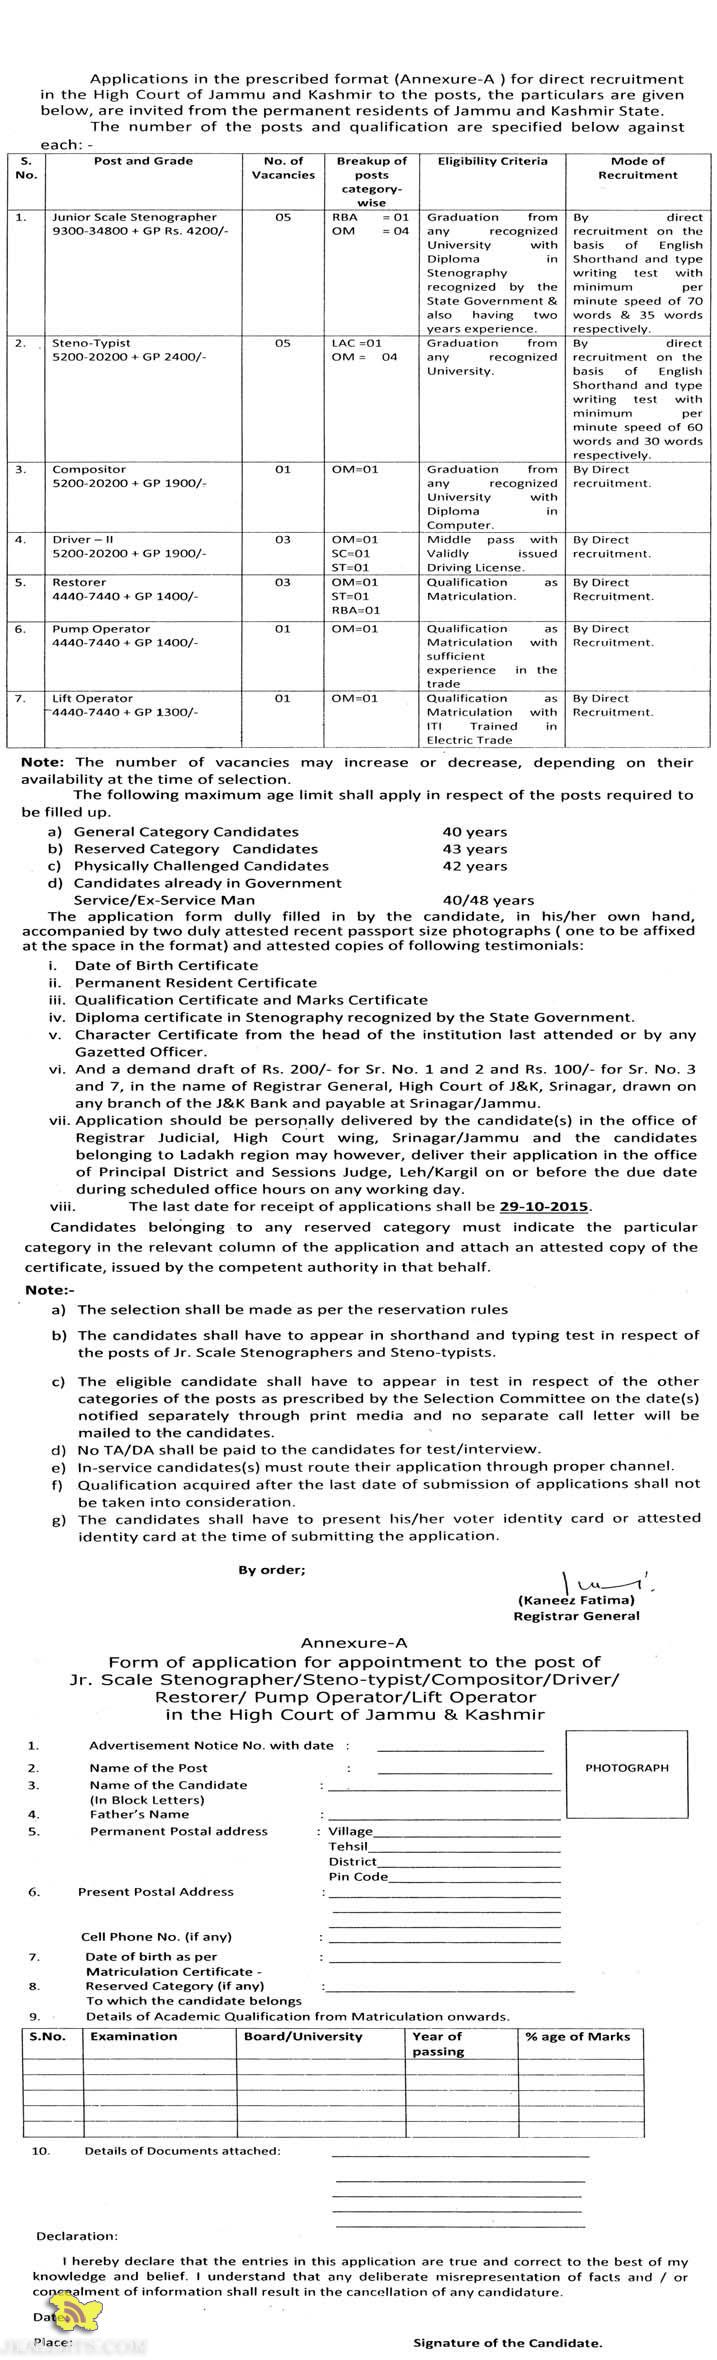 Jobs in High Court of Jammu and Kashmir, Recruitment 2015